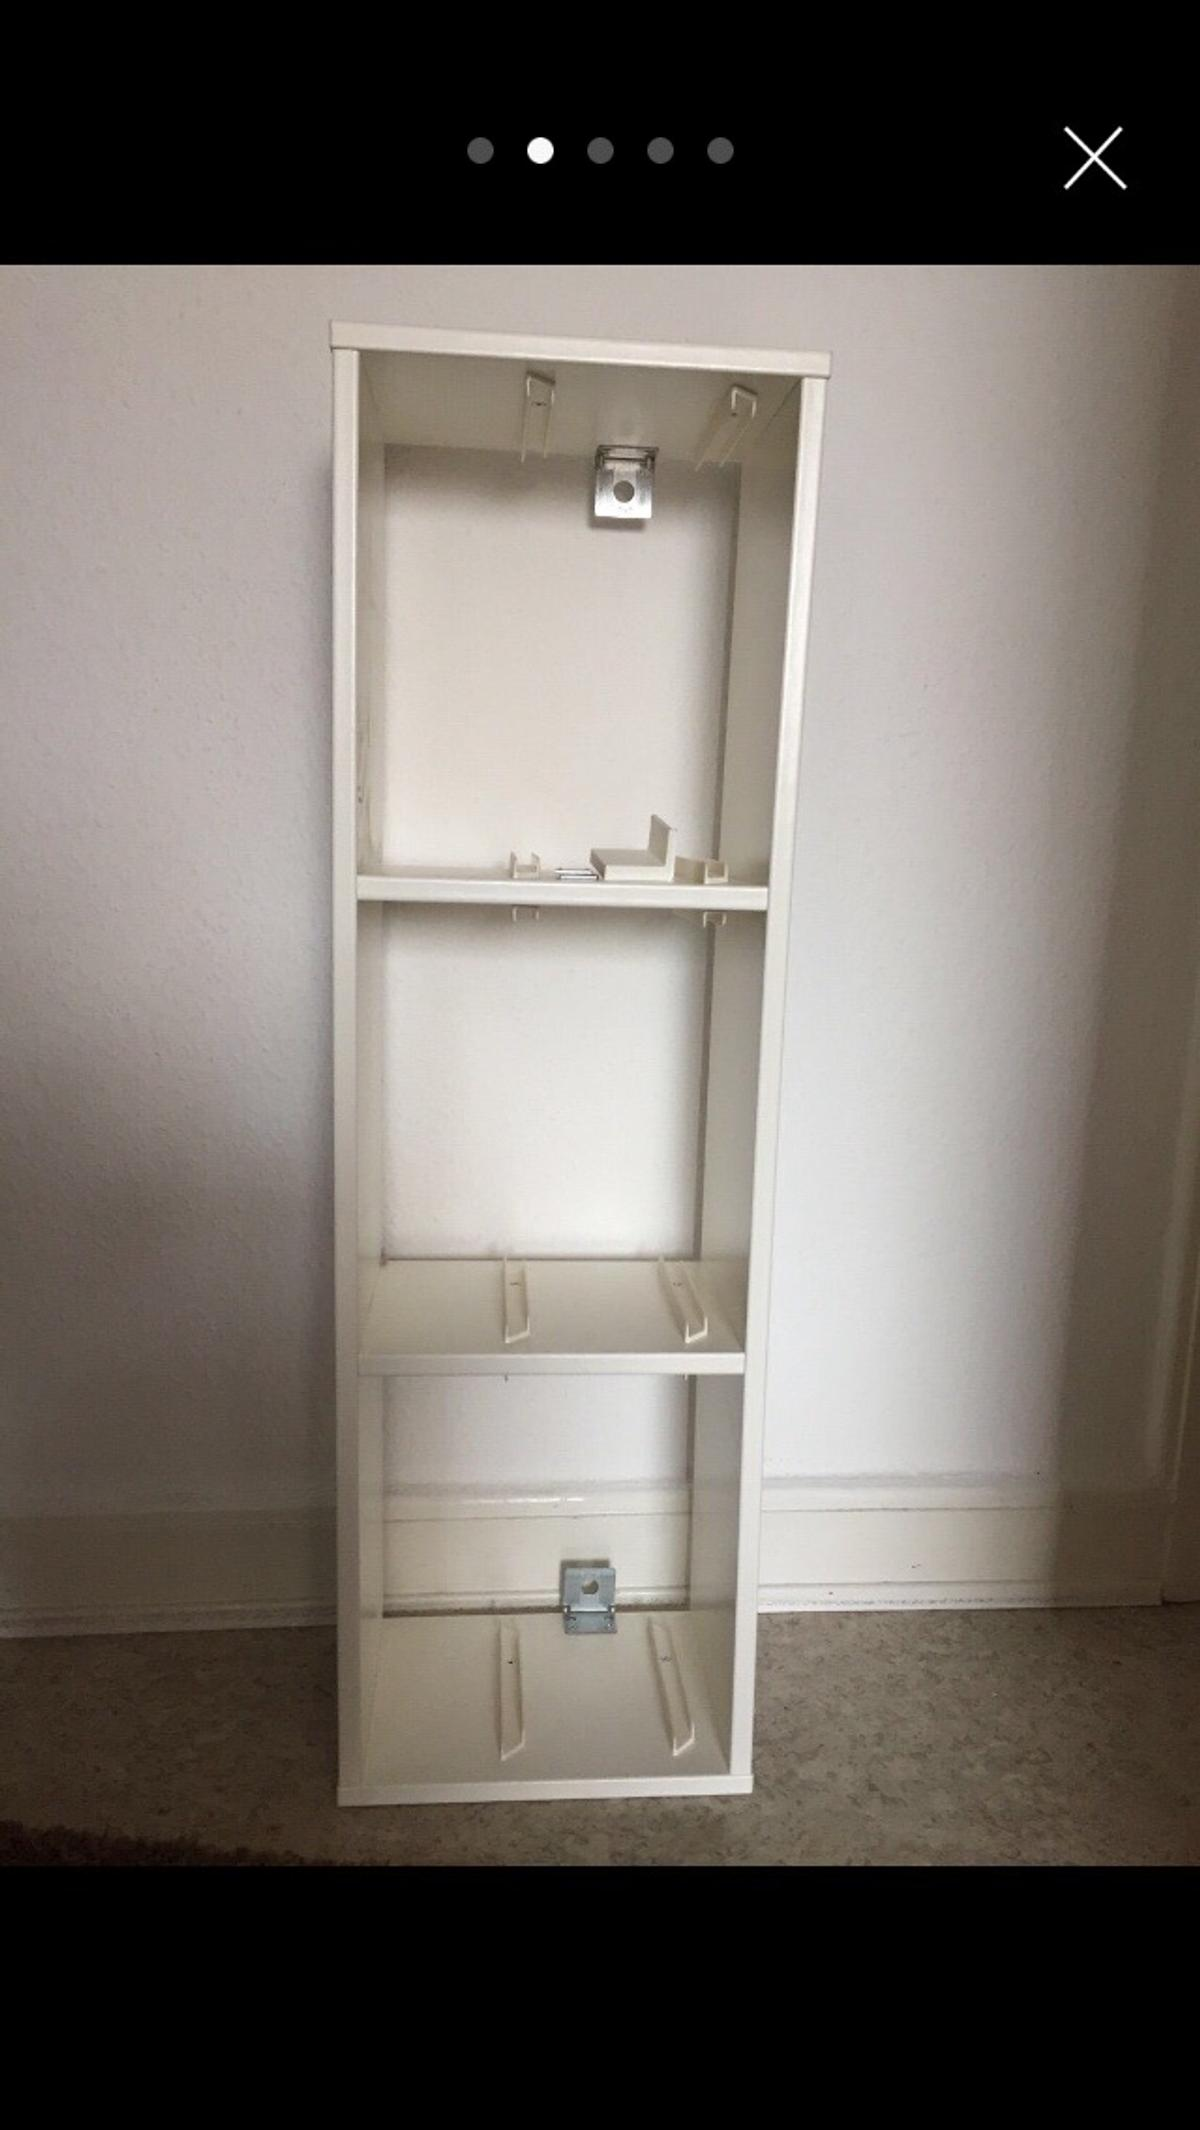 Ikea Trofast Wandregal 2 Boxen In 68199 Mannheim For 15 00 For